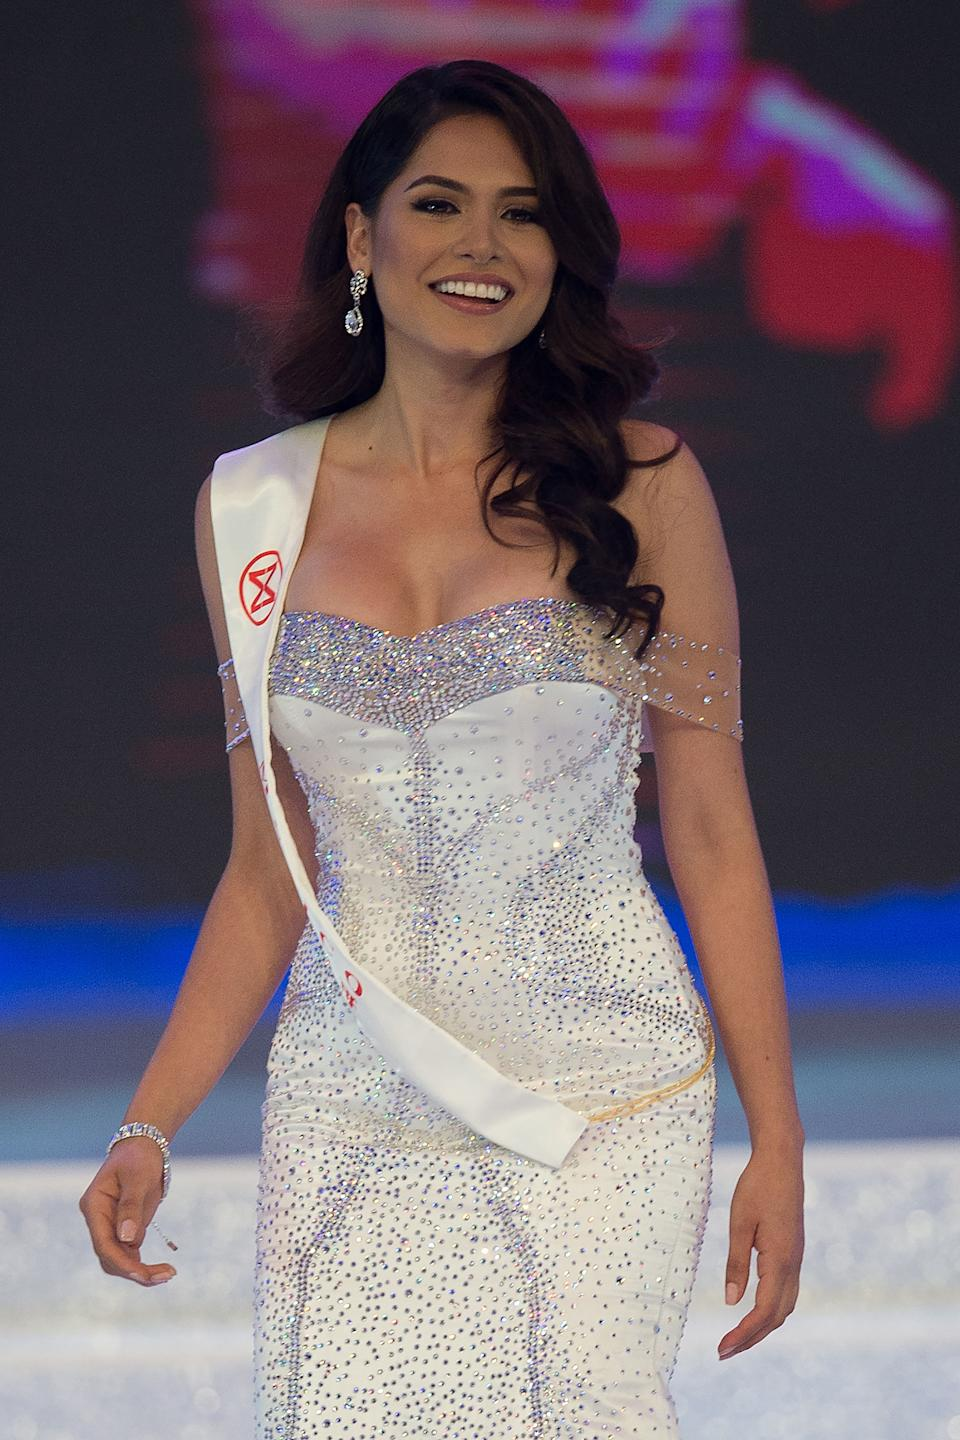 Miss Mexico Alma Andrea Meza Carmona walks on stage during the 67th Miss World contest final in Sanya, on the tropical Chinese island of Hainan on November 18, 2017. / AFP PHOTO / NICOLAS ASFOURI        (Photo credit should read NICOLAS ASFOURI/AFP via Getty Images)